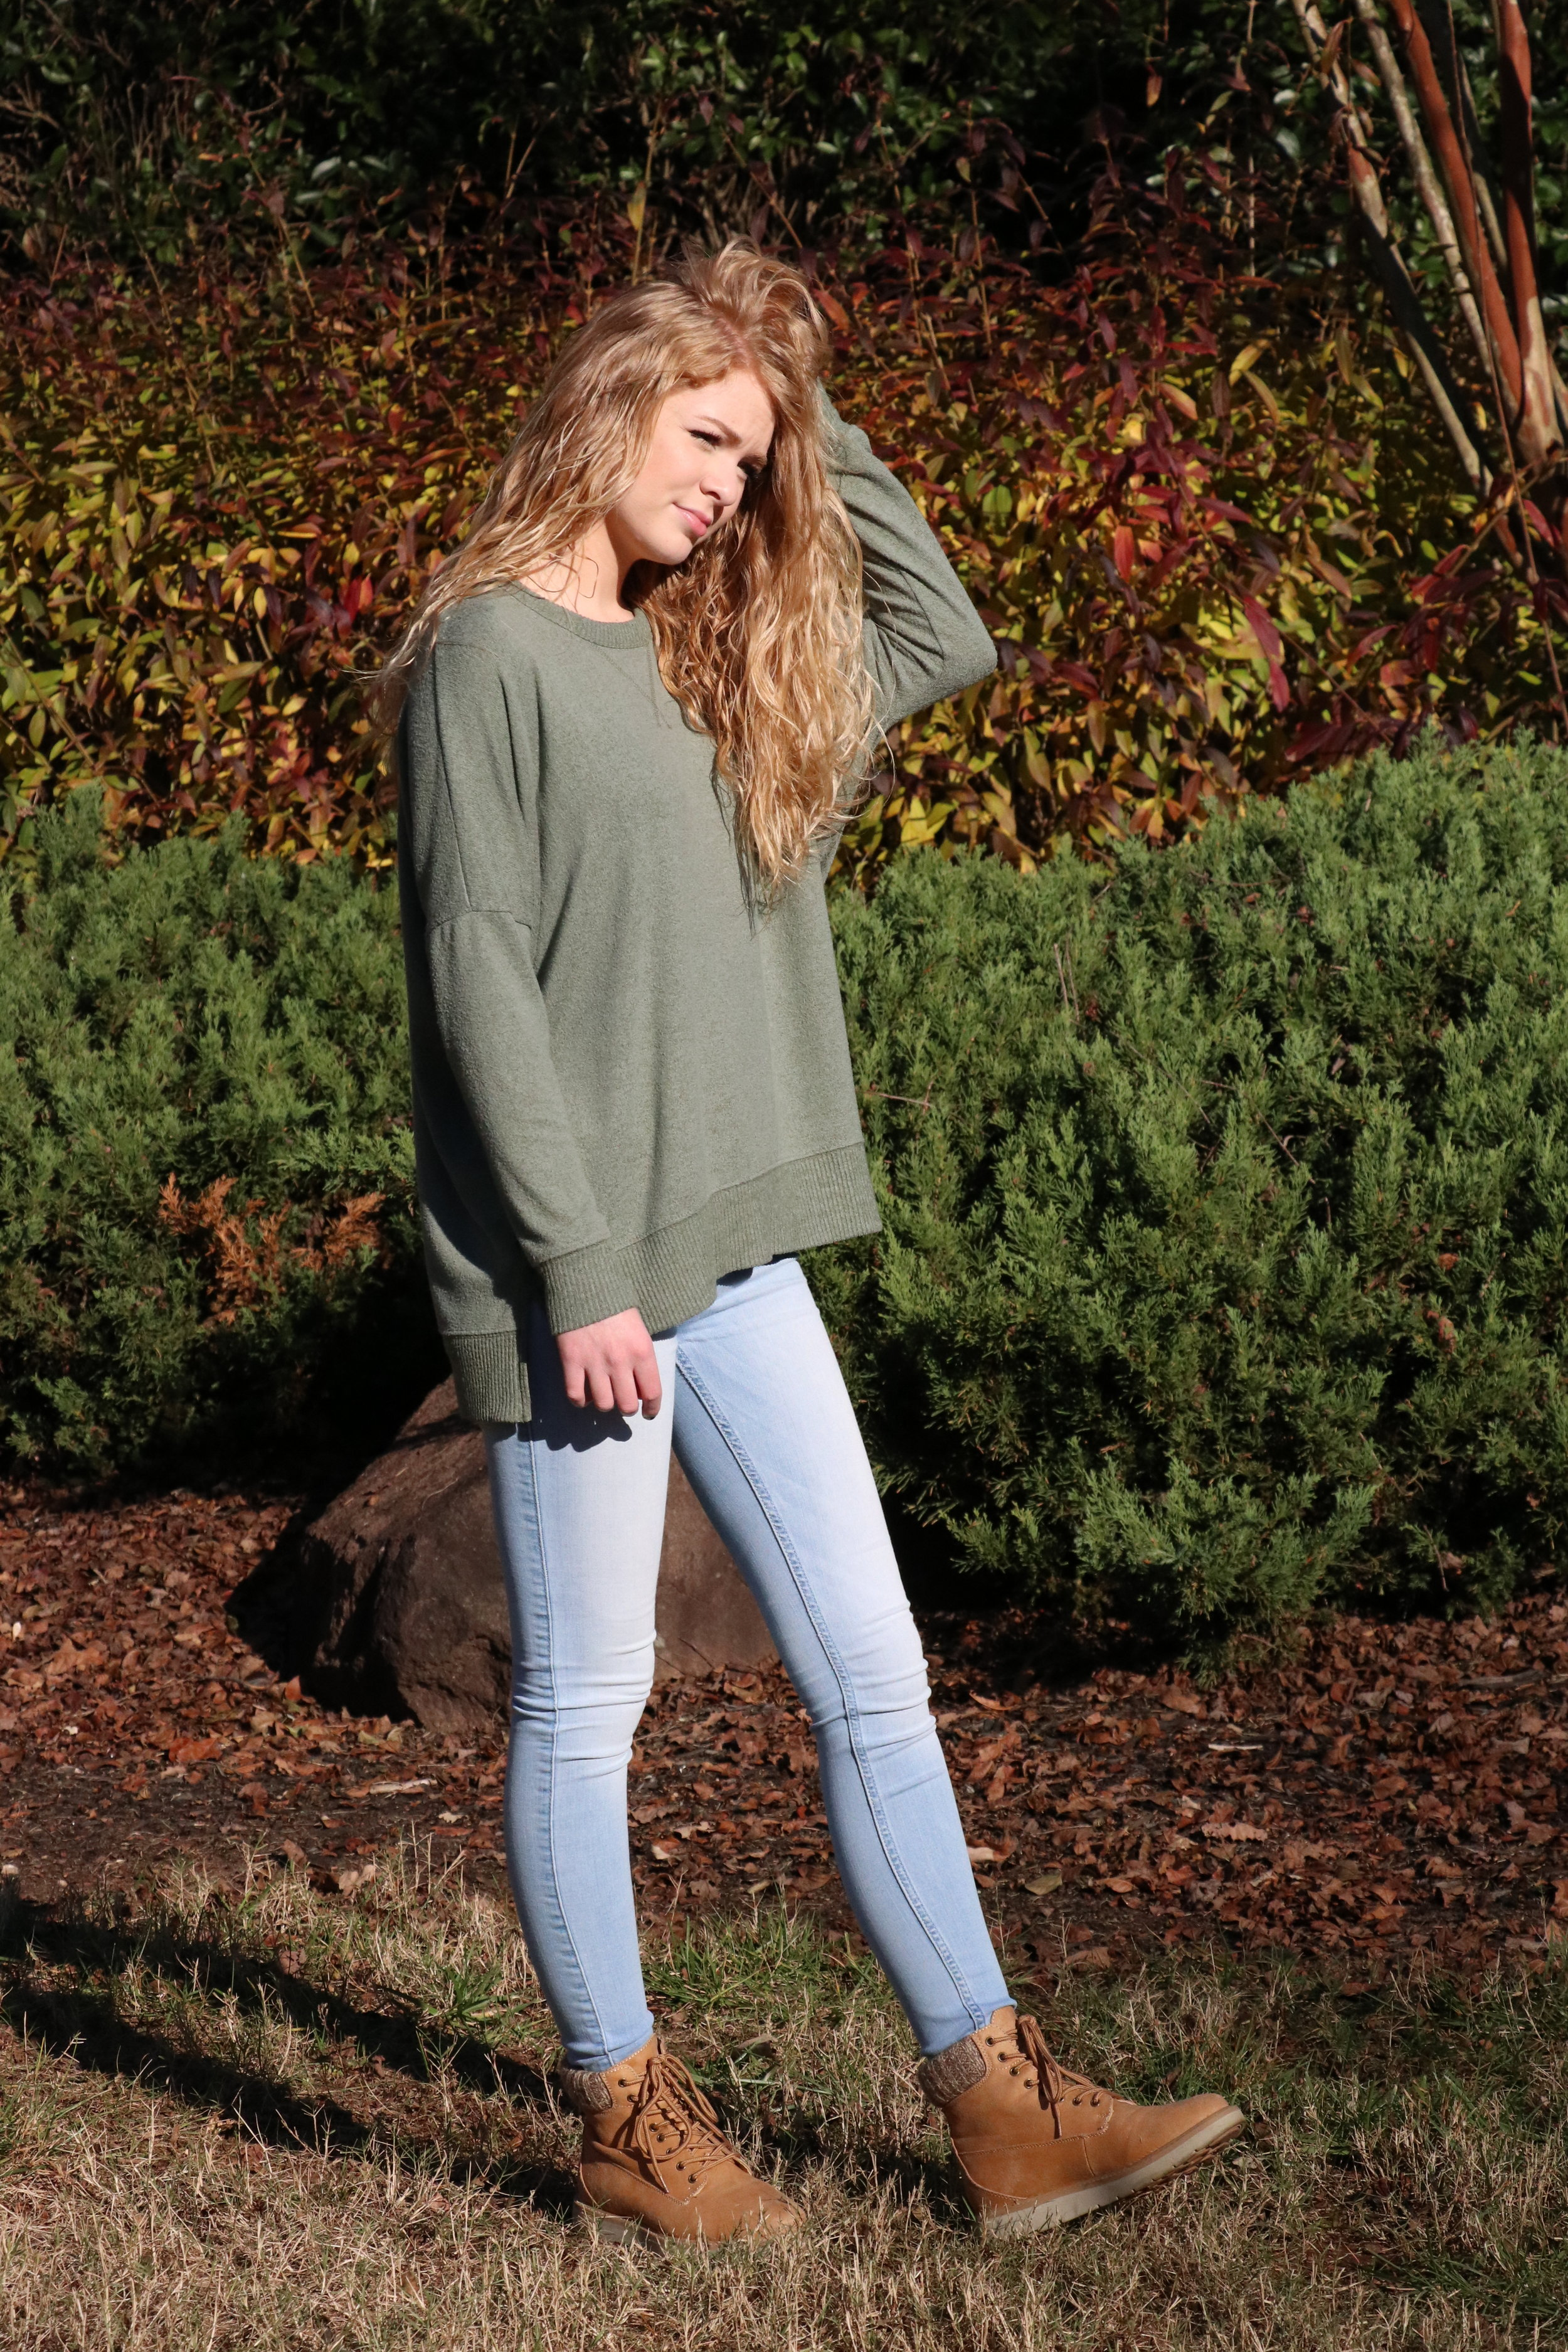 Taylor Loughry, Sophomore, goes with a green loose sweater over light washed jeans and some light brown combat boots.